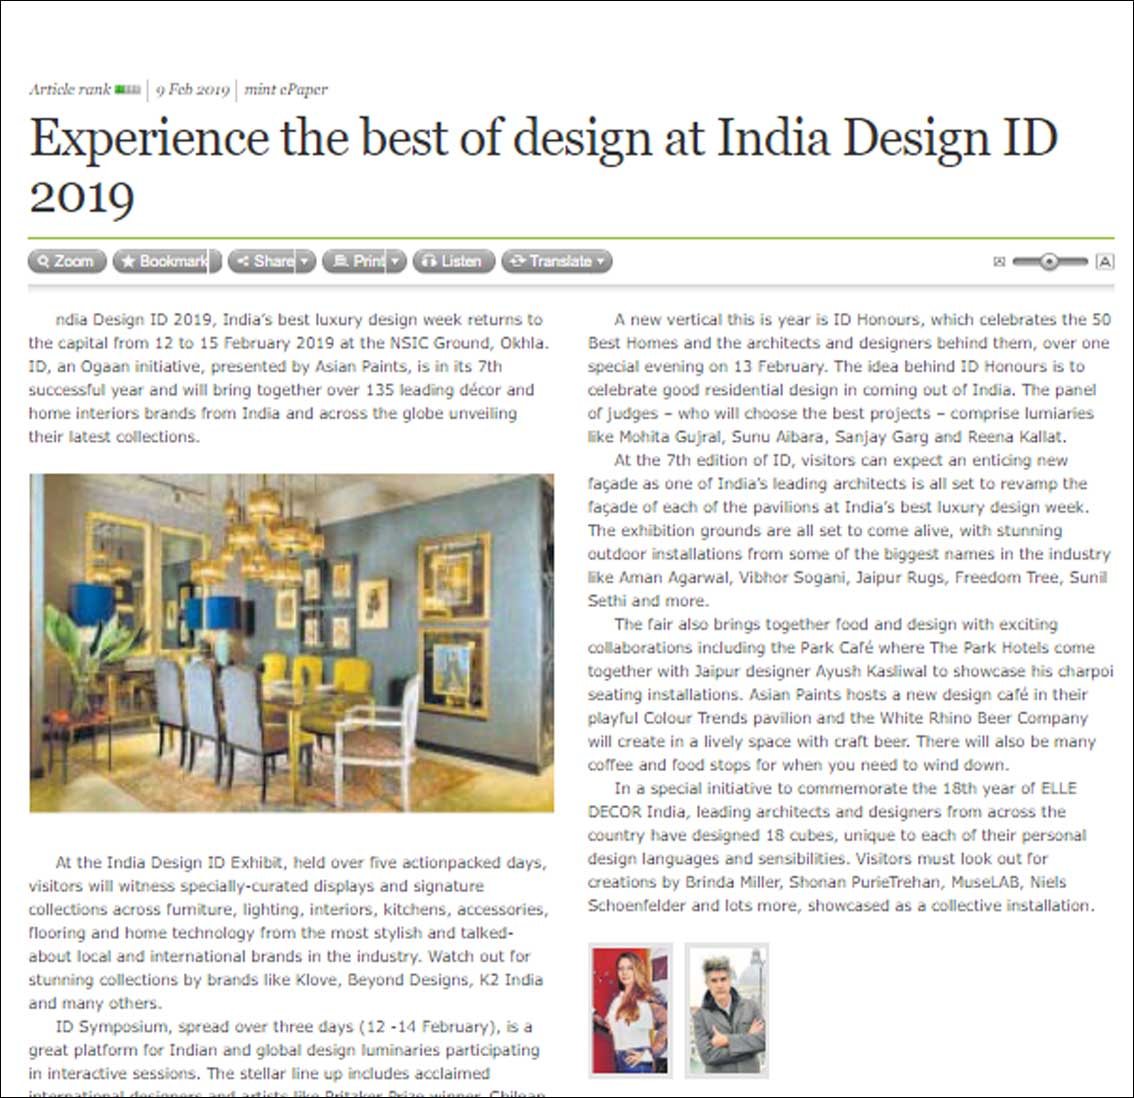 Experience the best of design at India Design ID 2019 - February 2019